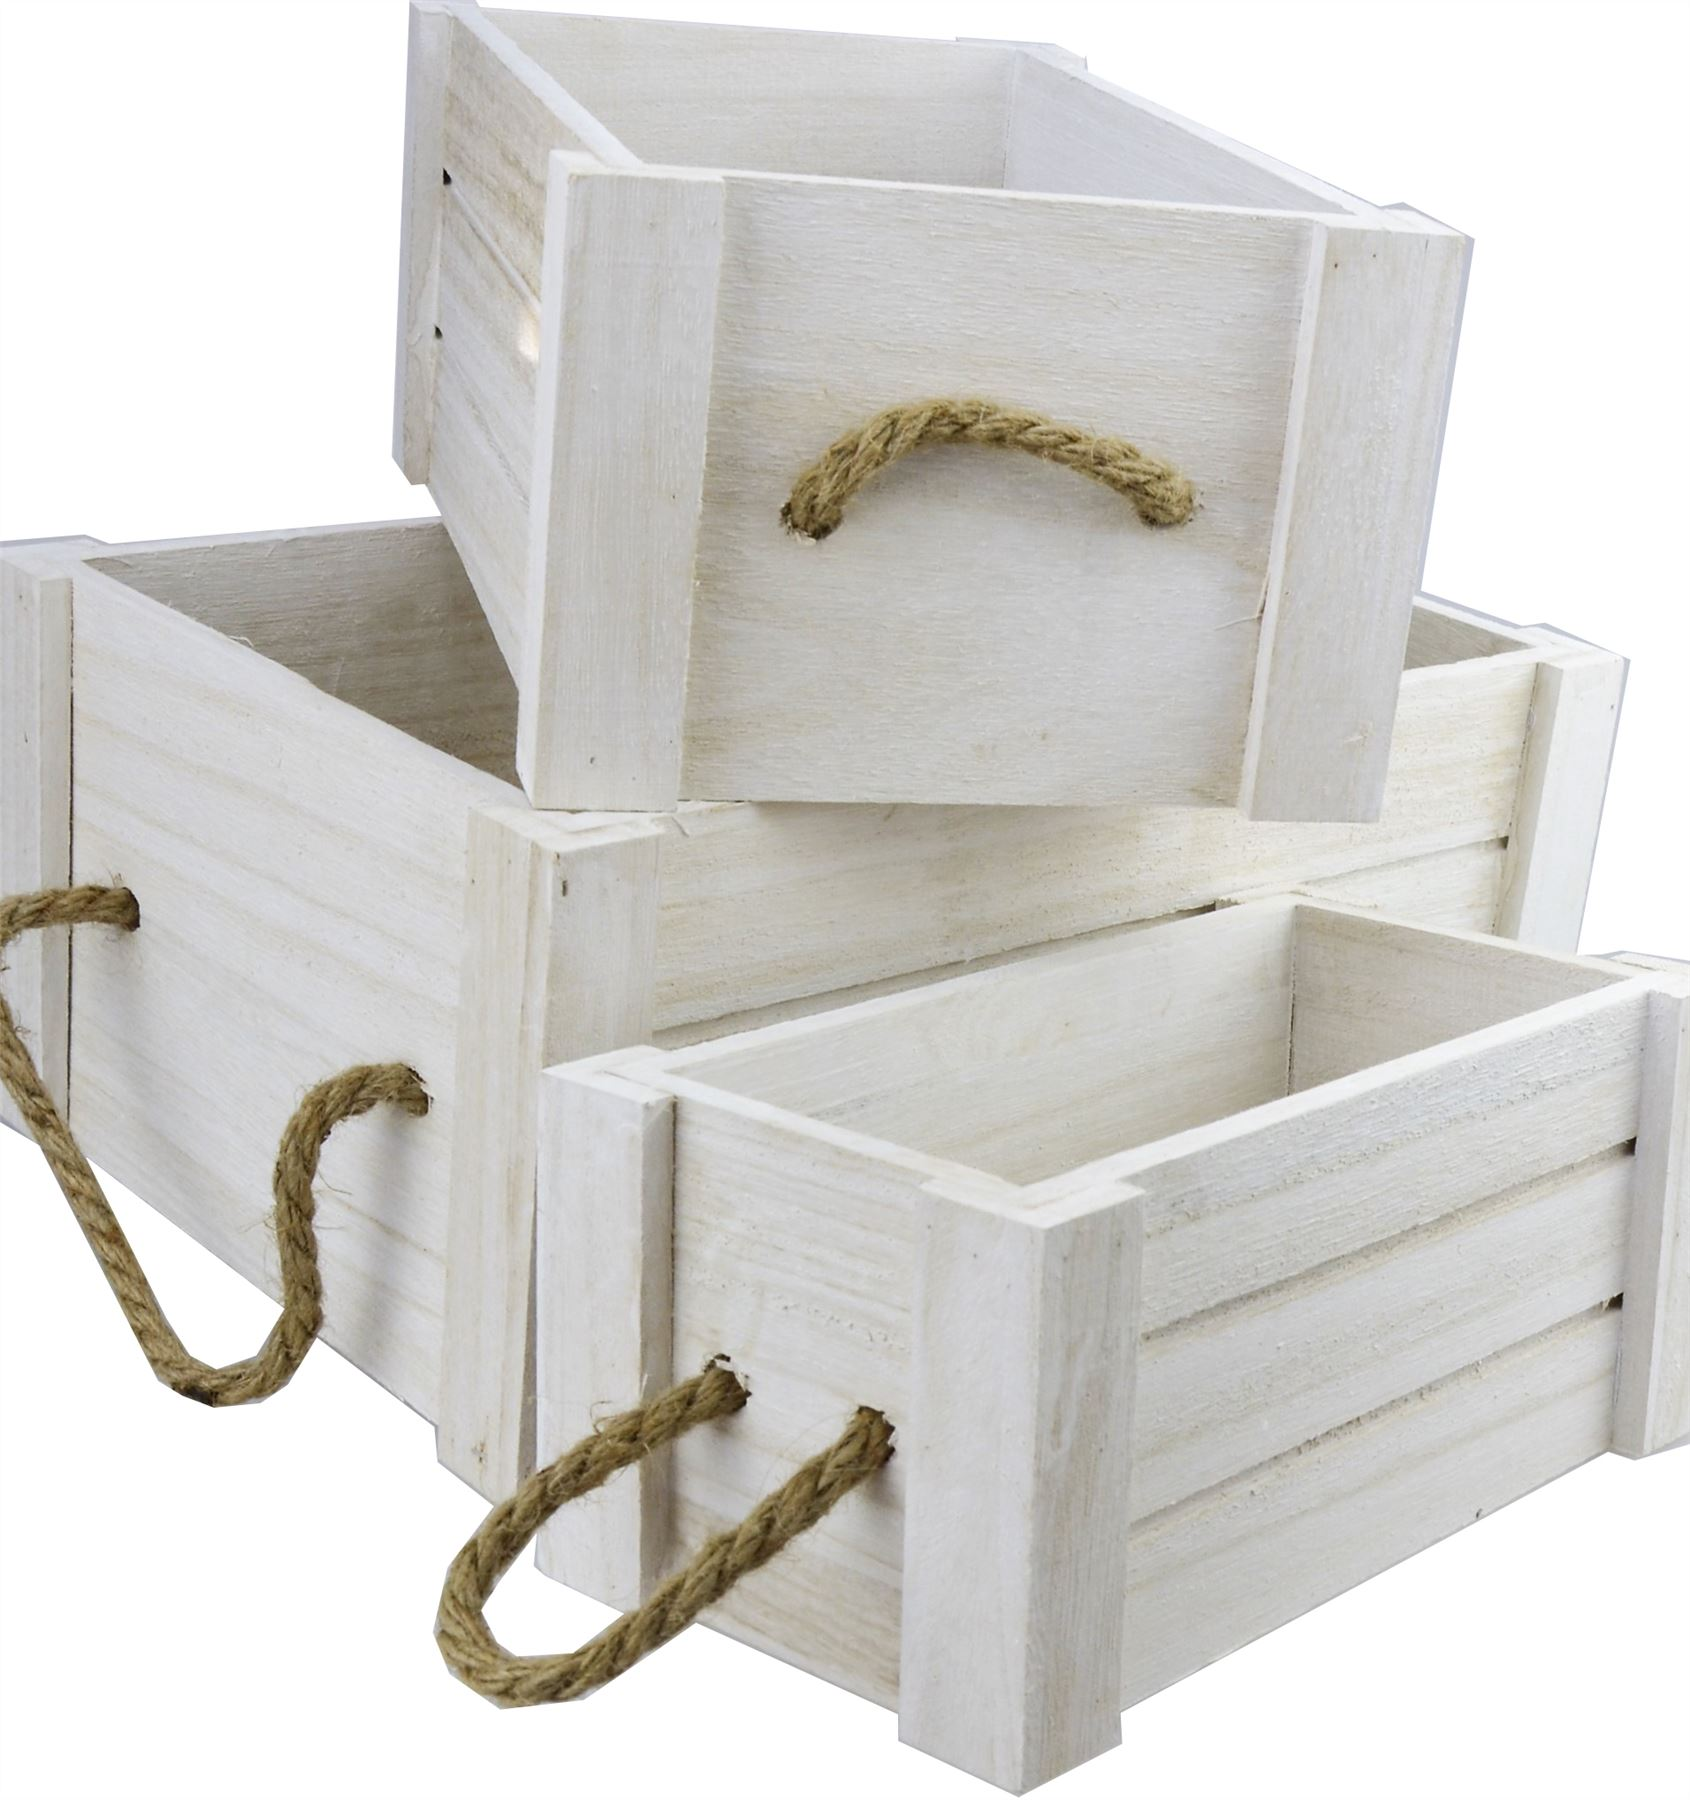 Storage Boxes Bathroom: Vintage Wooden Apple Crate Shabby Chic Box Fruit Kitchen